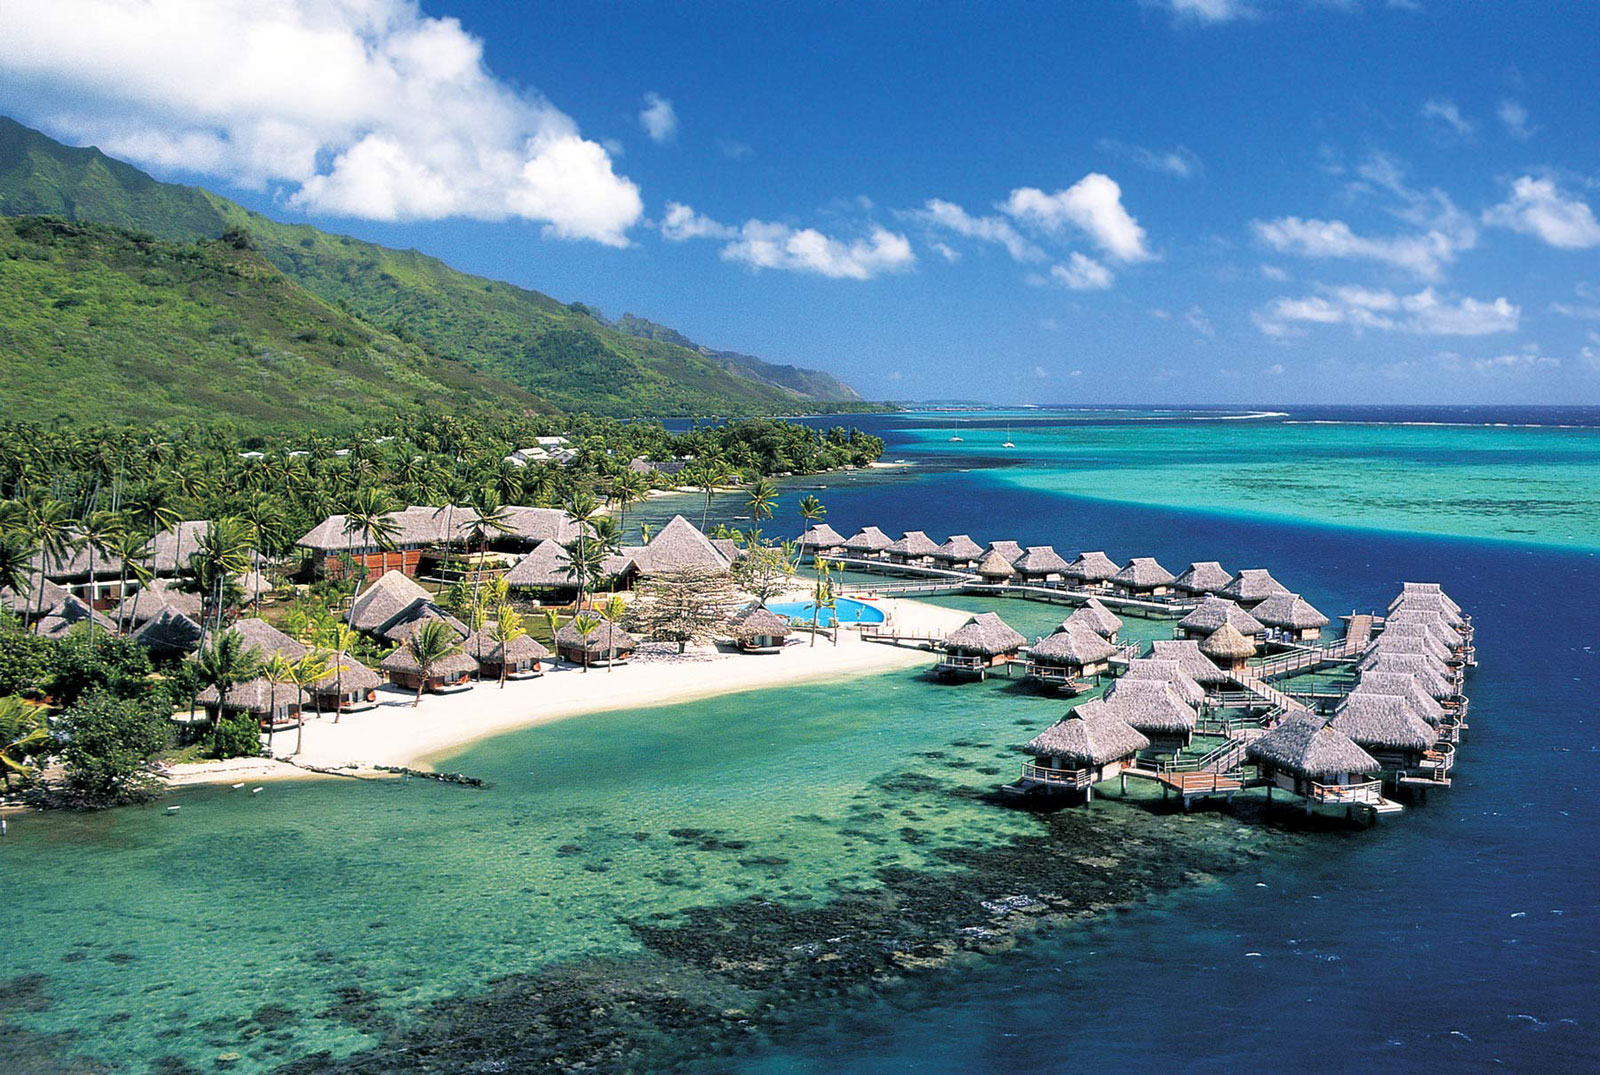 lombok indonesia Lombok indonesia - online hotel, travel and tour guide, for your holiday gateway through out lombok trip, activities, trekking, tour.